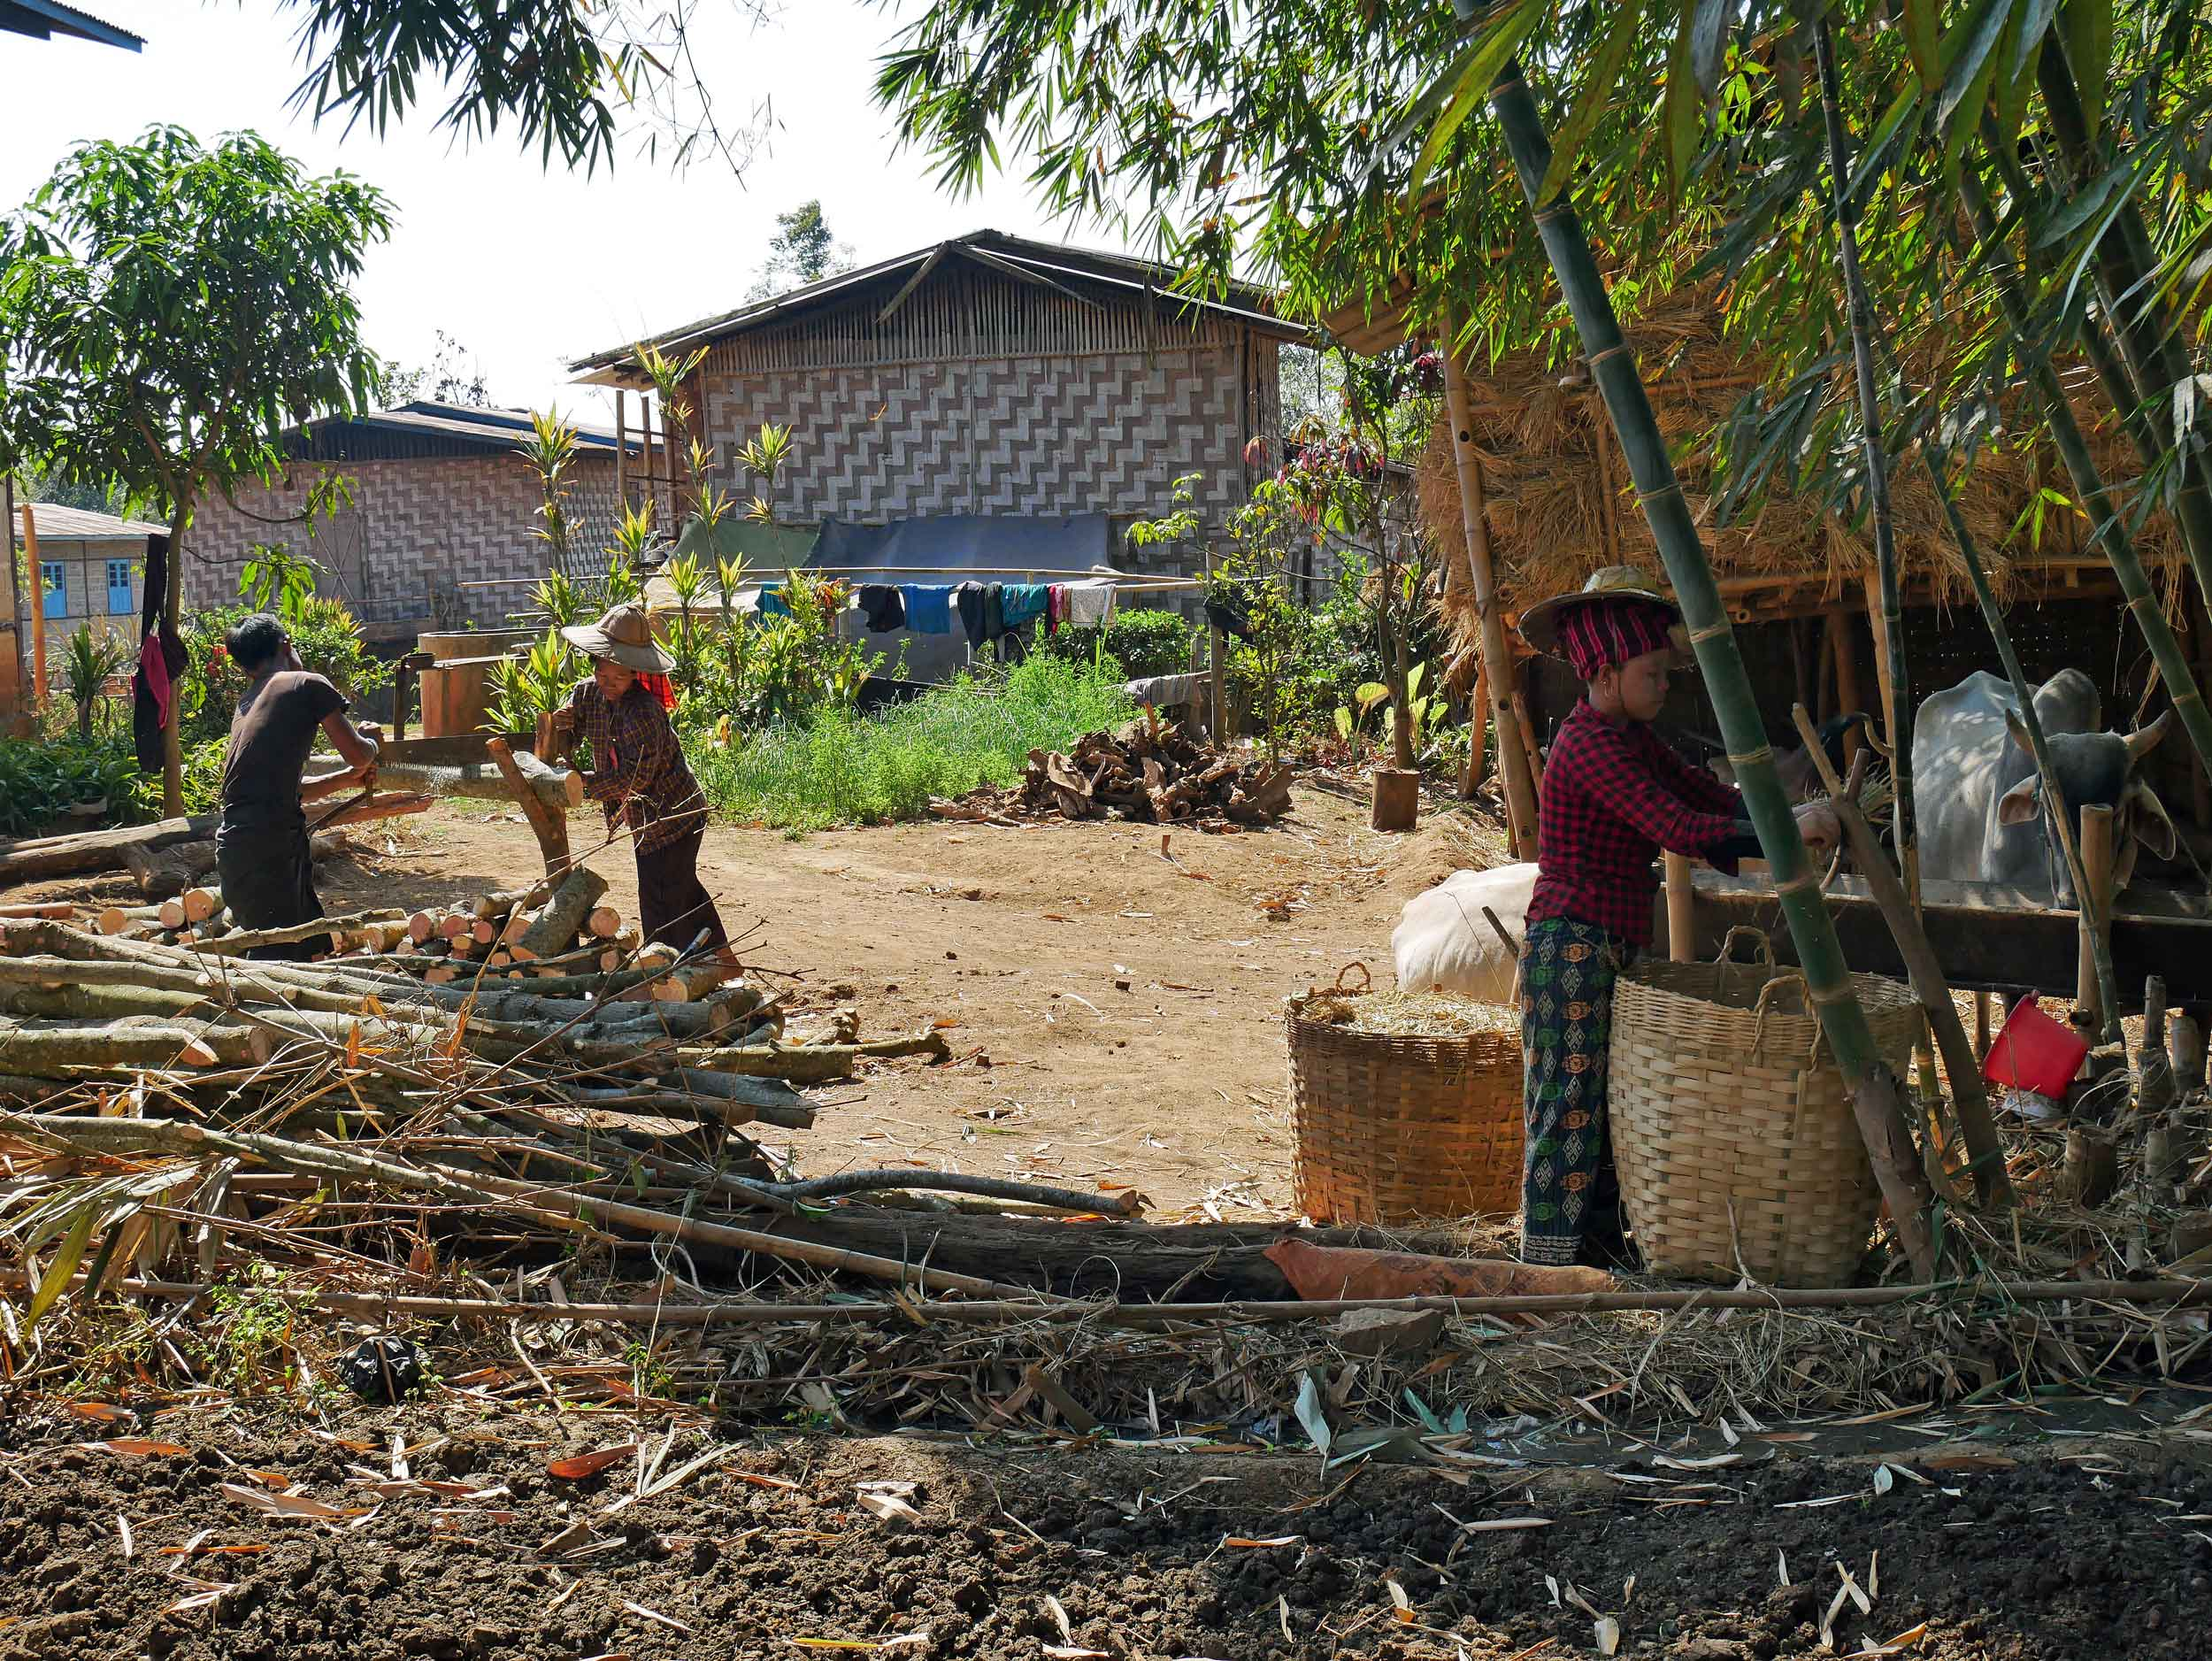 Work in the villages ranges from working in the fields to weaving bamboo for housing or baskets to cutting firewood for cooking and warmth (Feb 20).